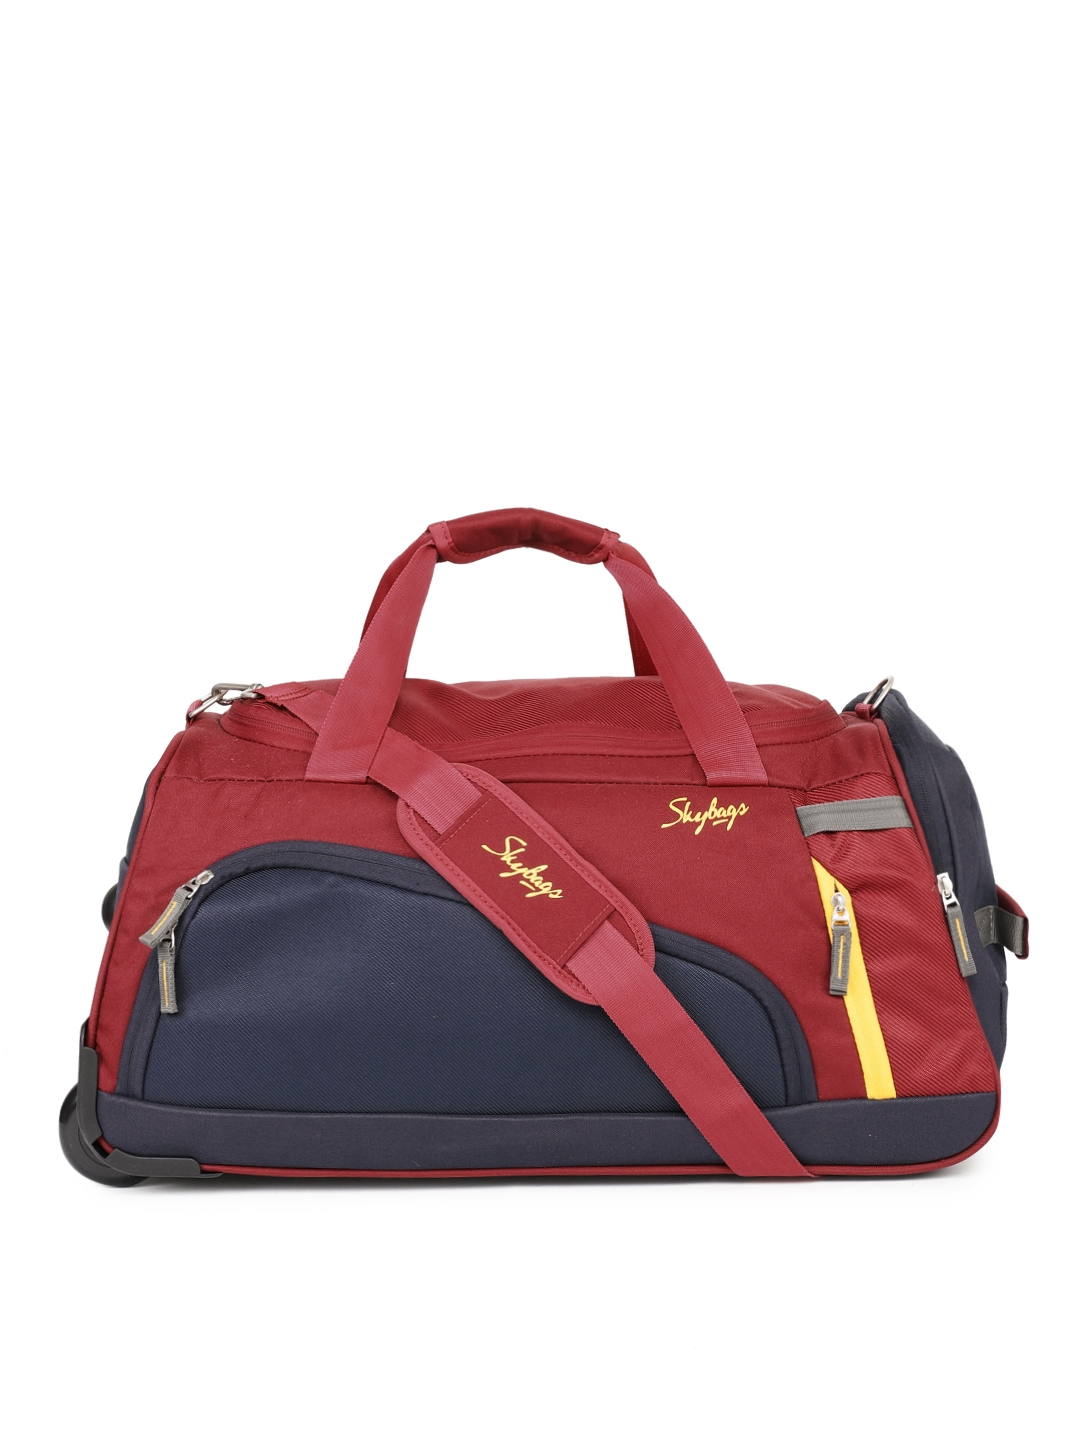 Skybags Unisex Red   Blue Colourblocked HATCH DFT 57 Cabin Trolley Duffel Bag